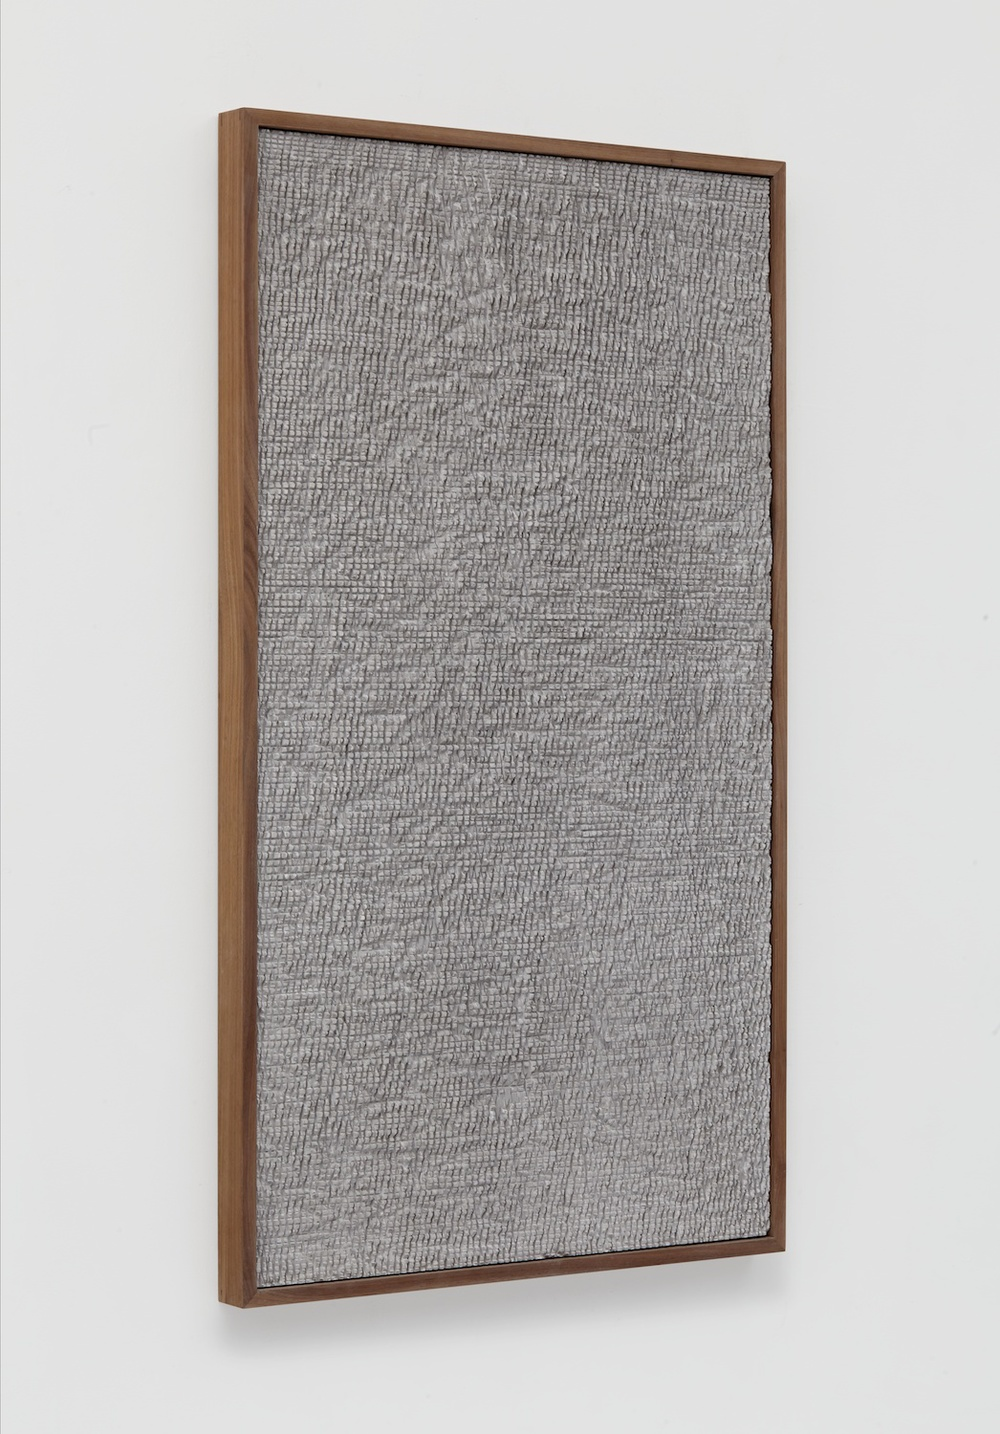 Anthony Pearson  Untitled (Etched Plaster)  2014 Pigmented hydrocal in walnut frame 48 ½h x 28w x 2 ¼d in AP353